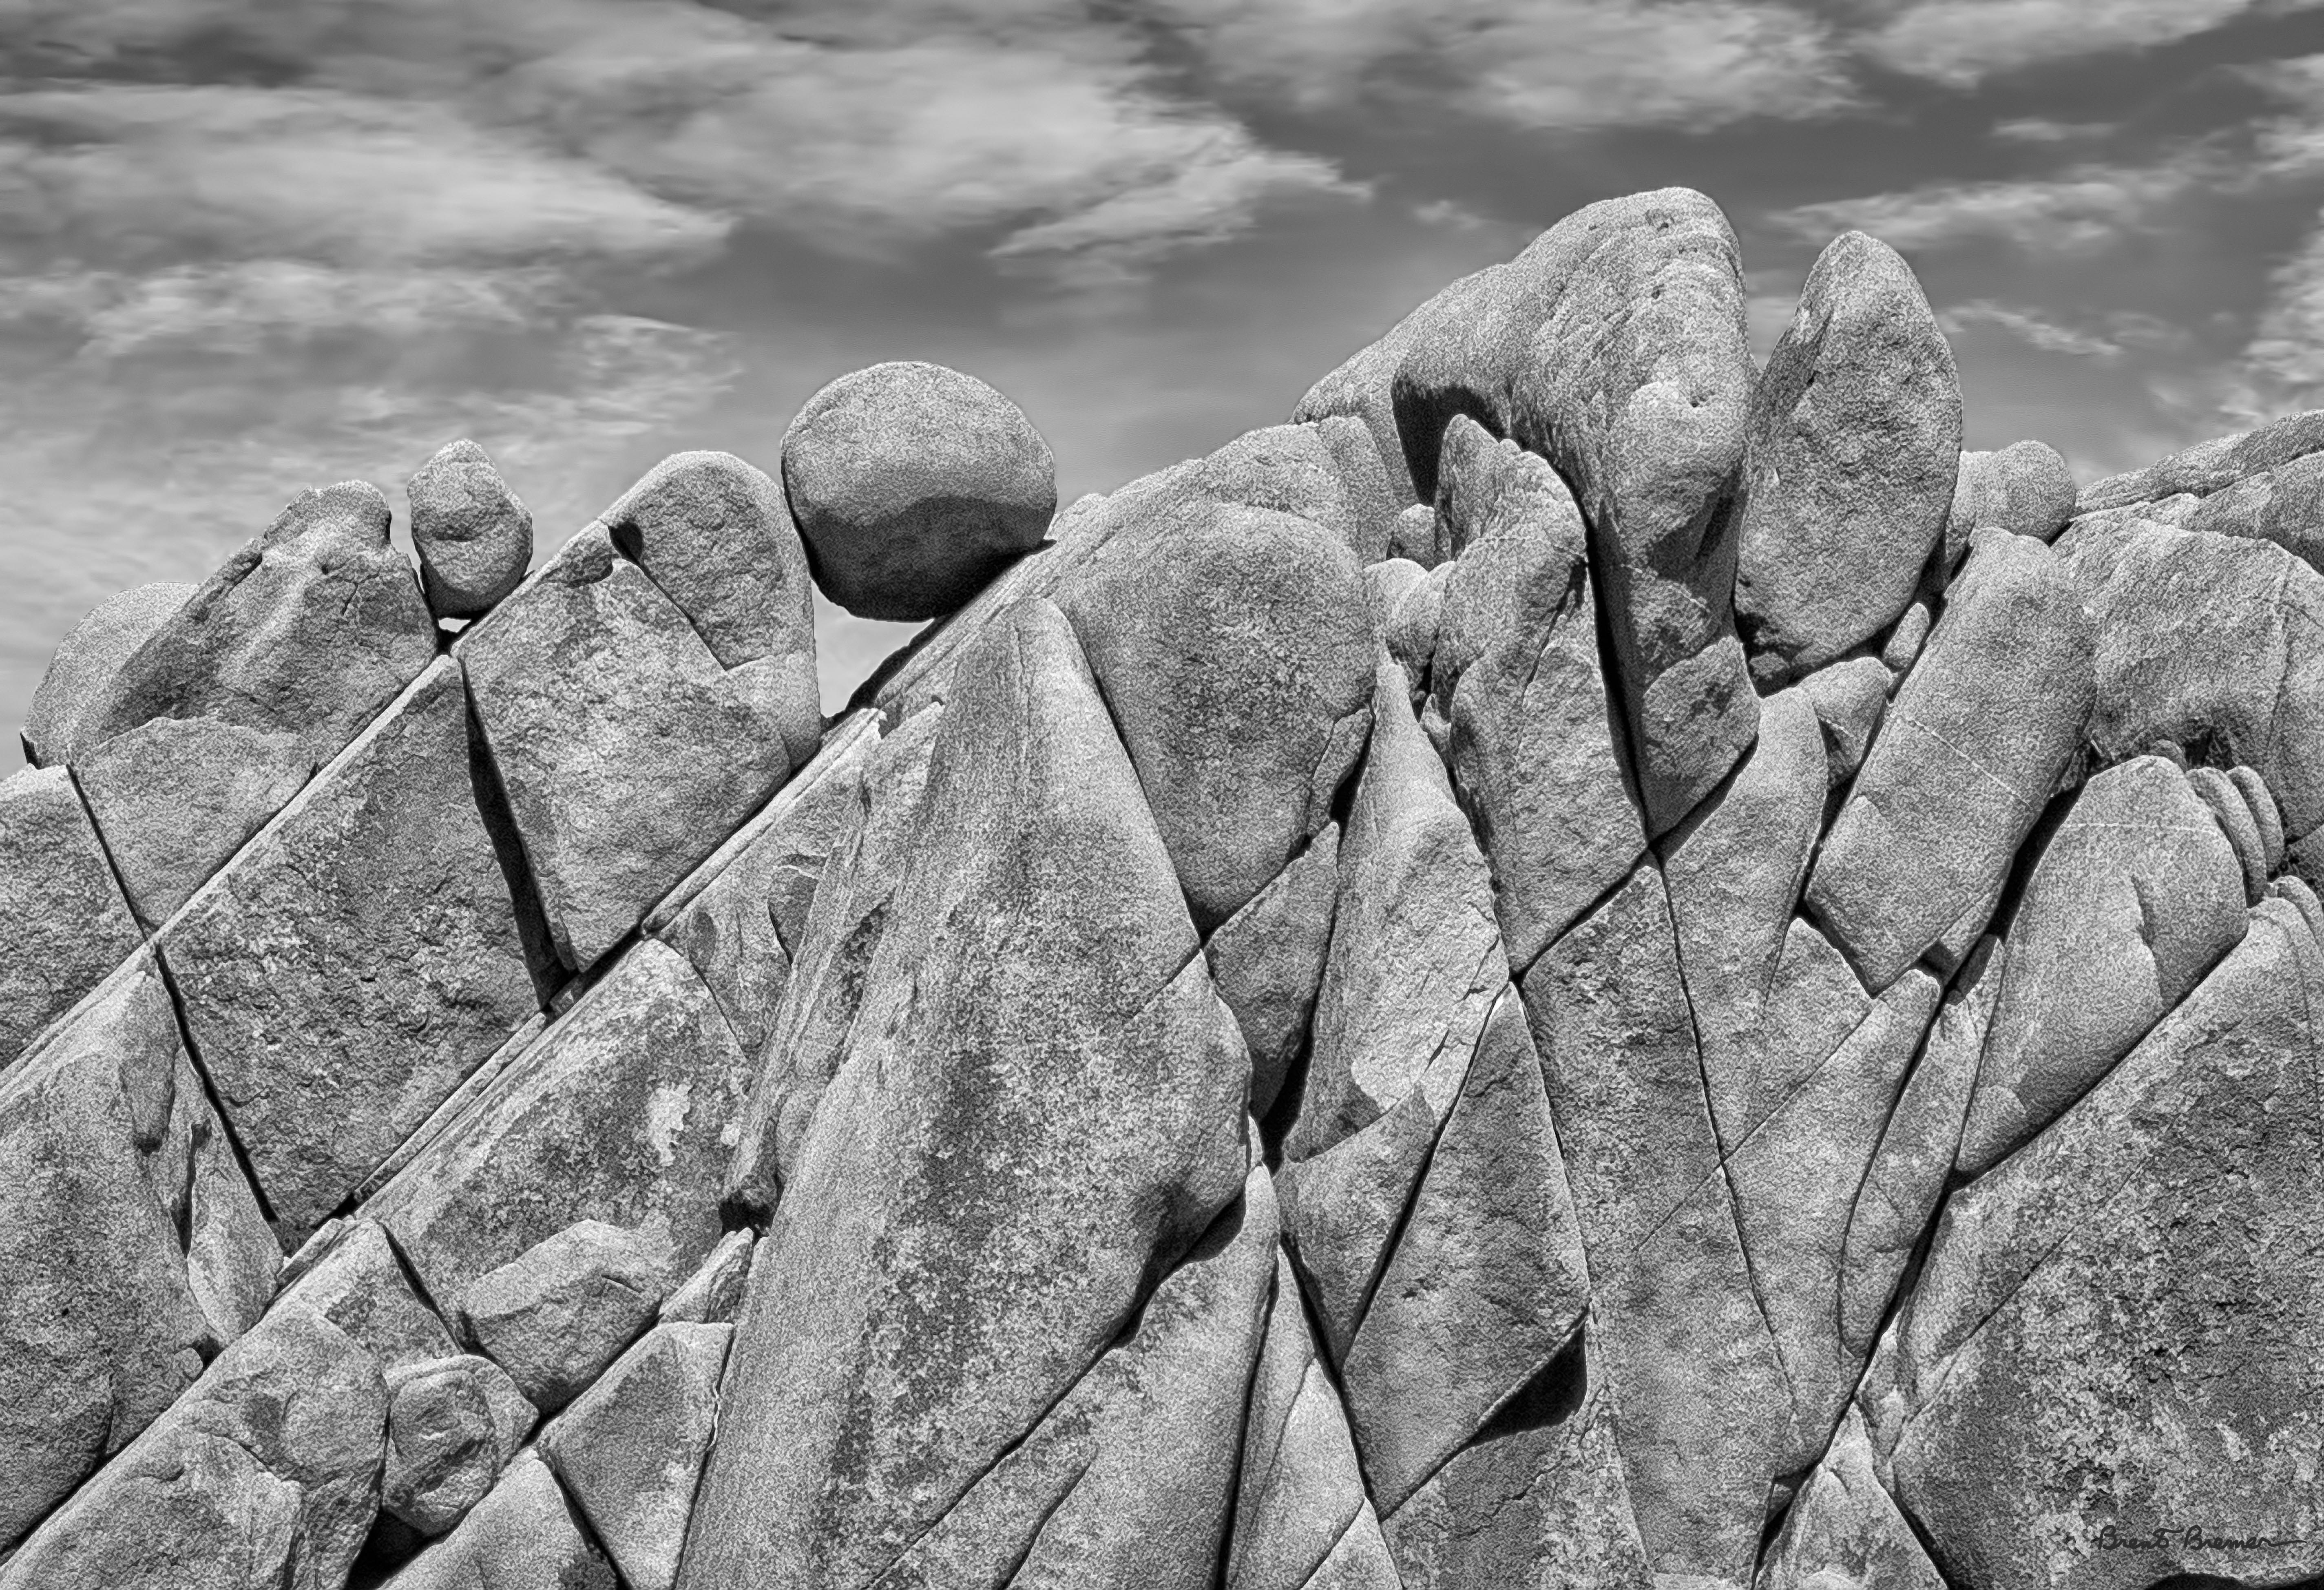 Joshua Tree Rock Formations - Brent Bremer